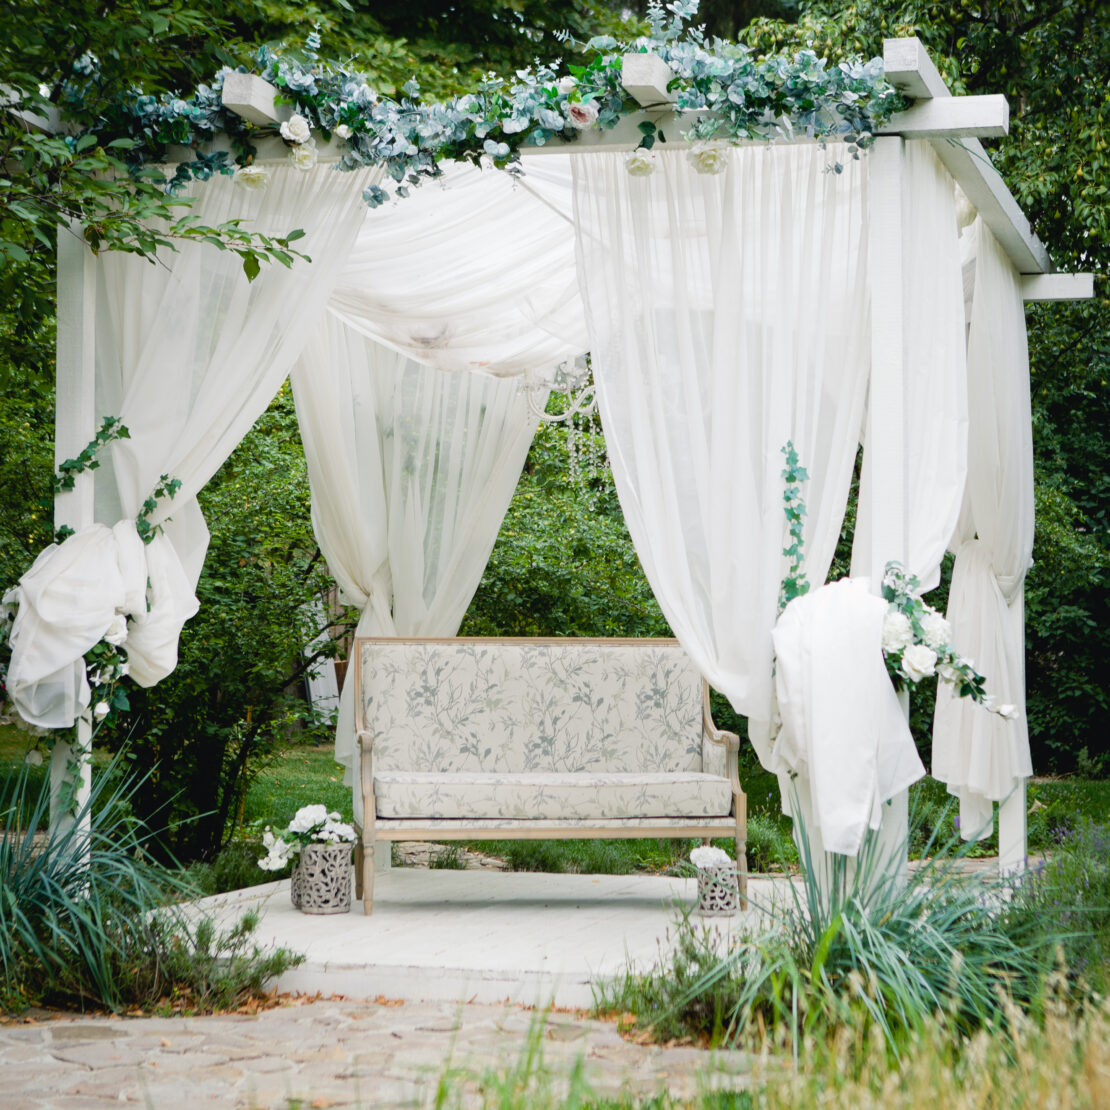 How to Hang Gazebo Curtains 3